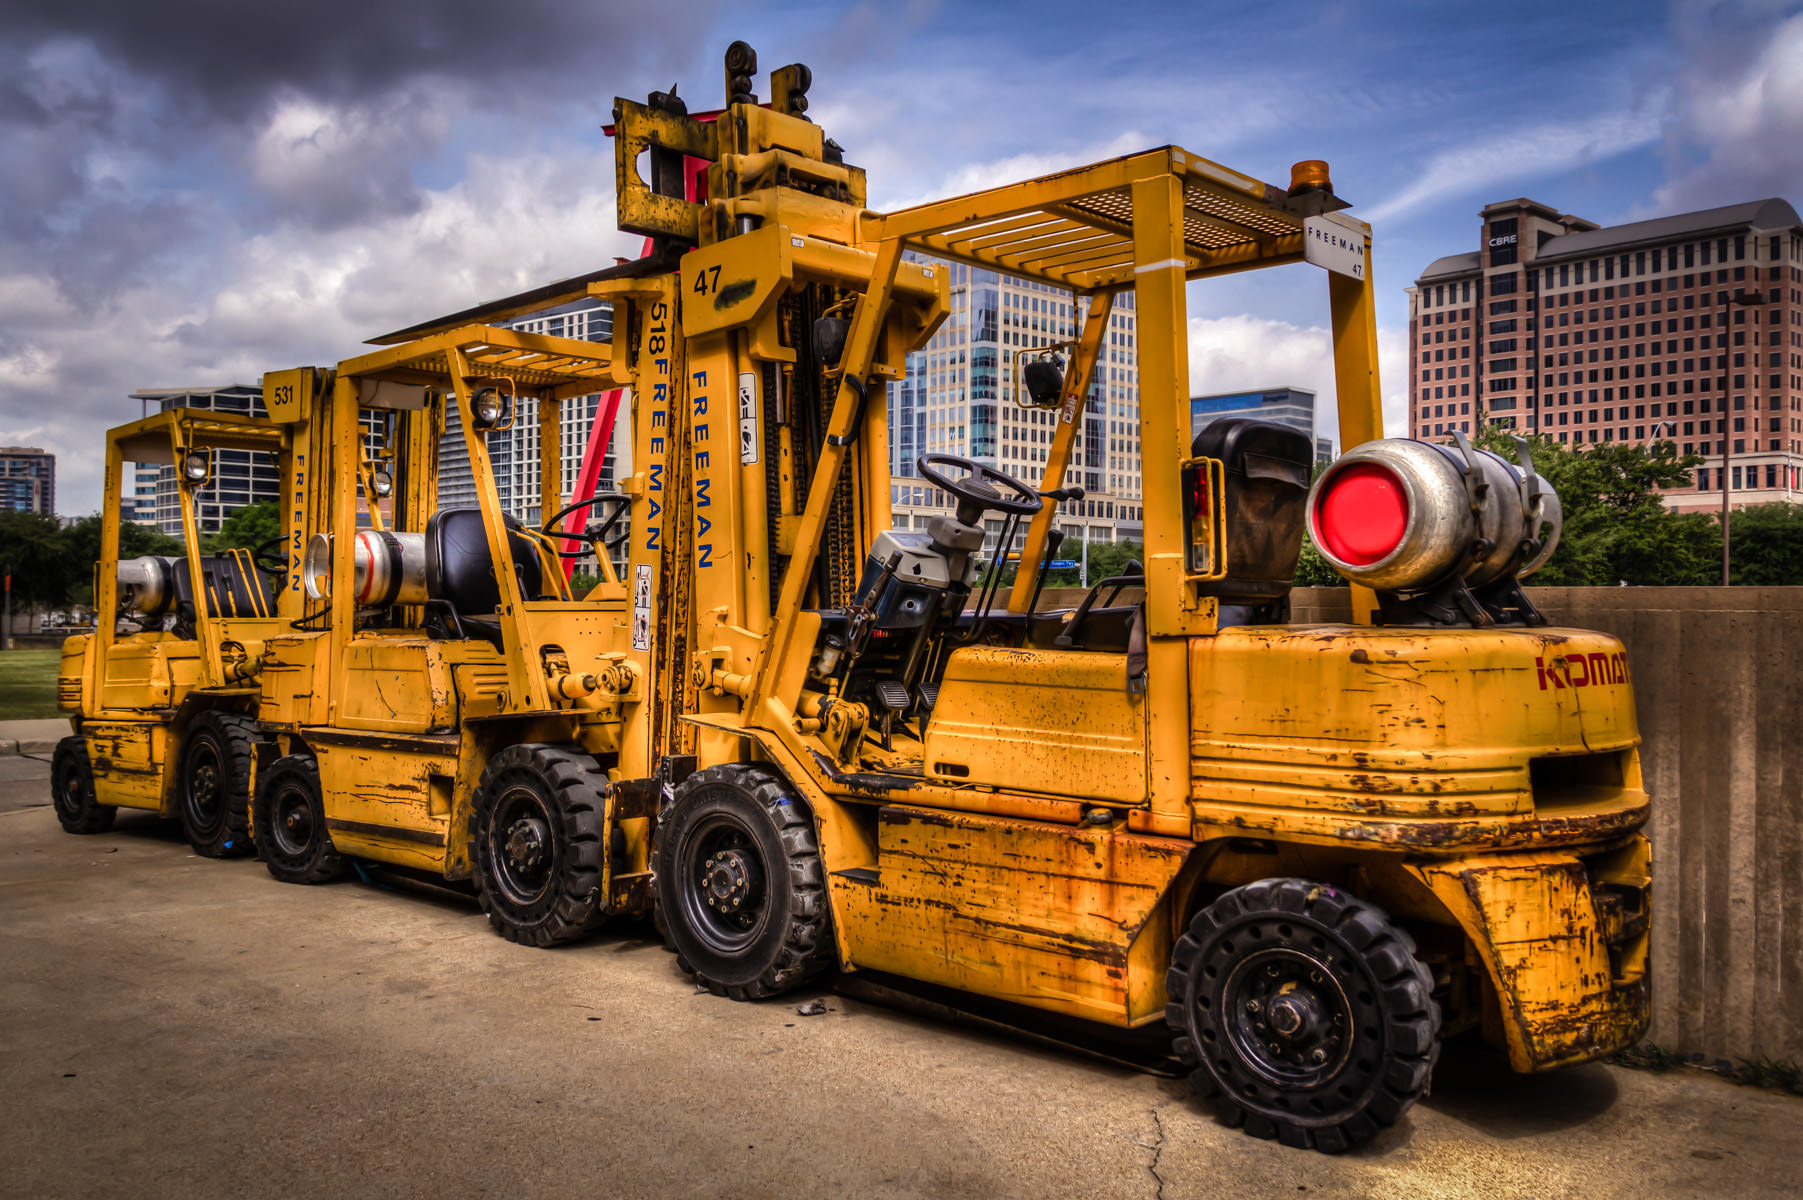 I found these forklifts next to a loading dock at the Meyerson Symphony Center in Dallas.